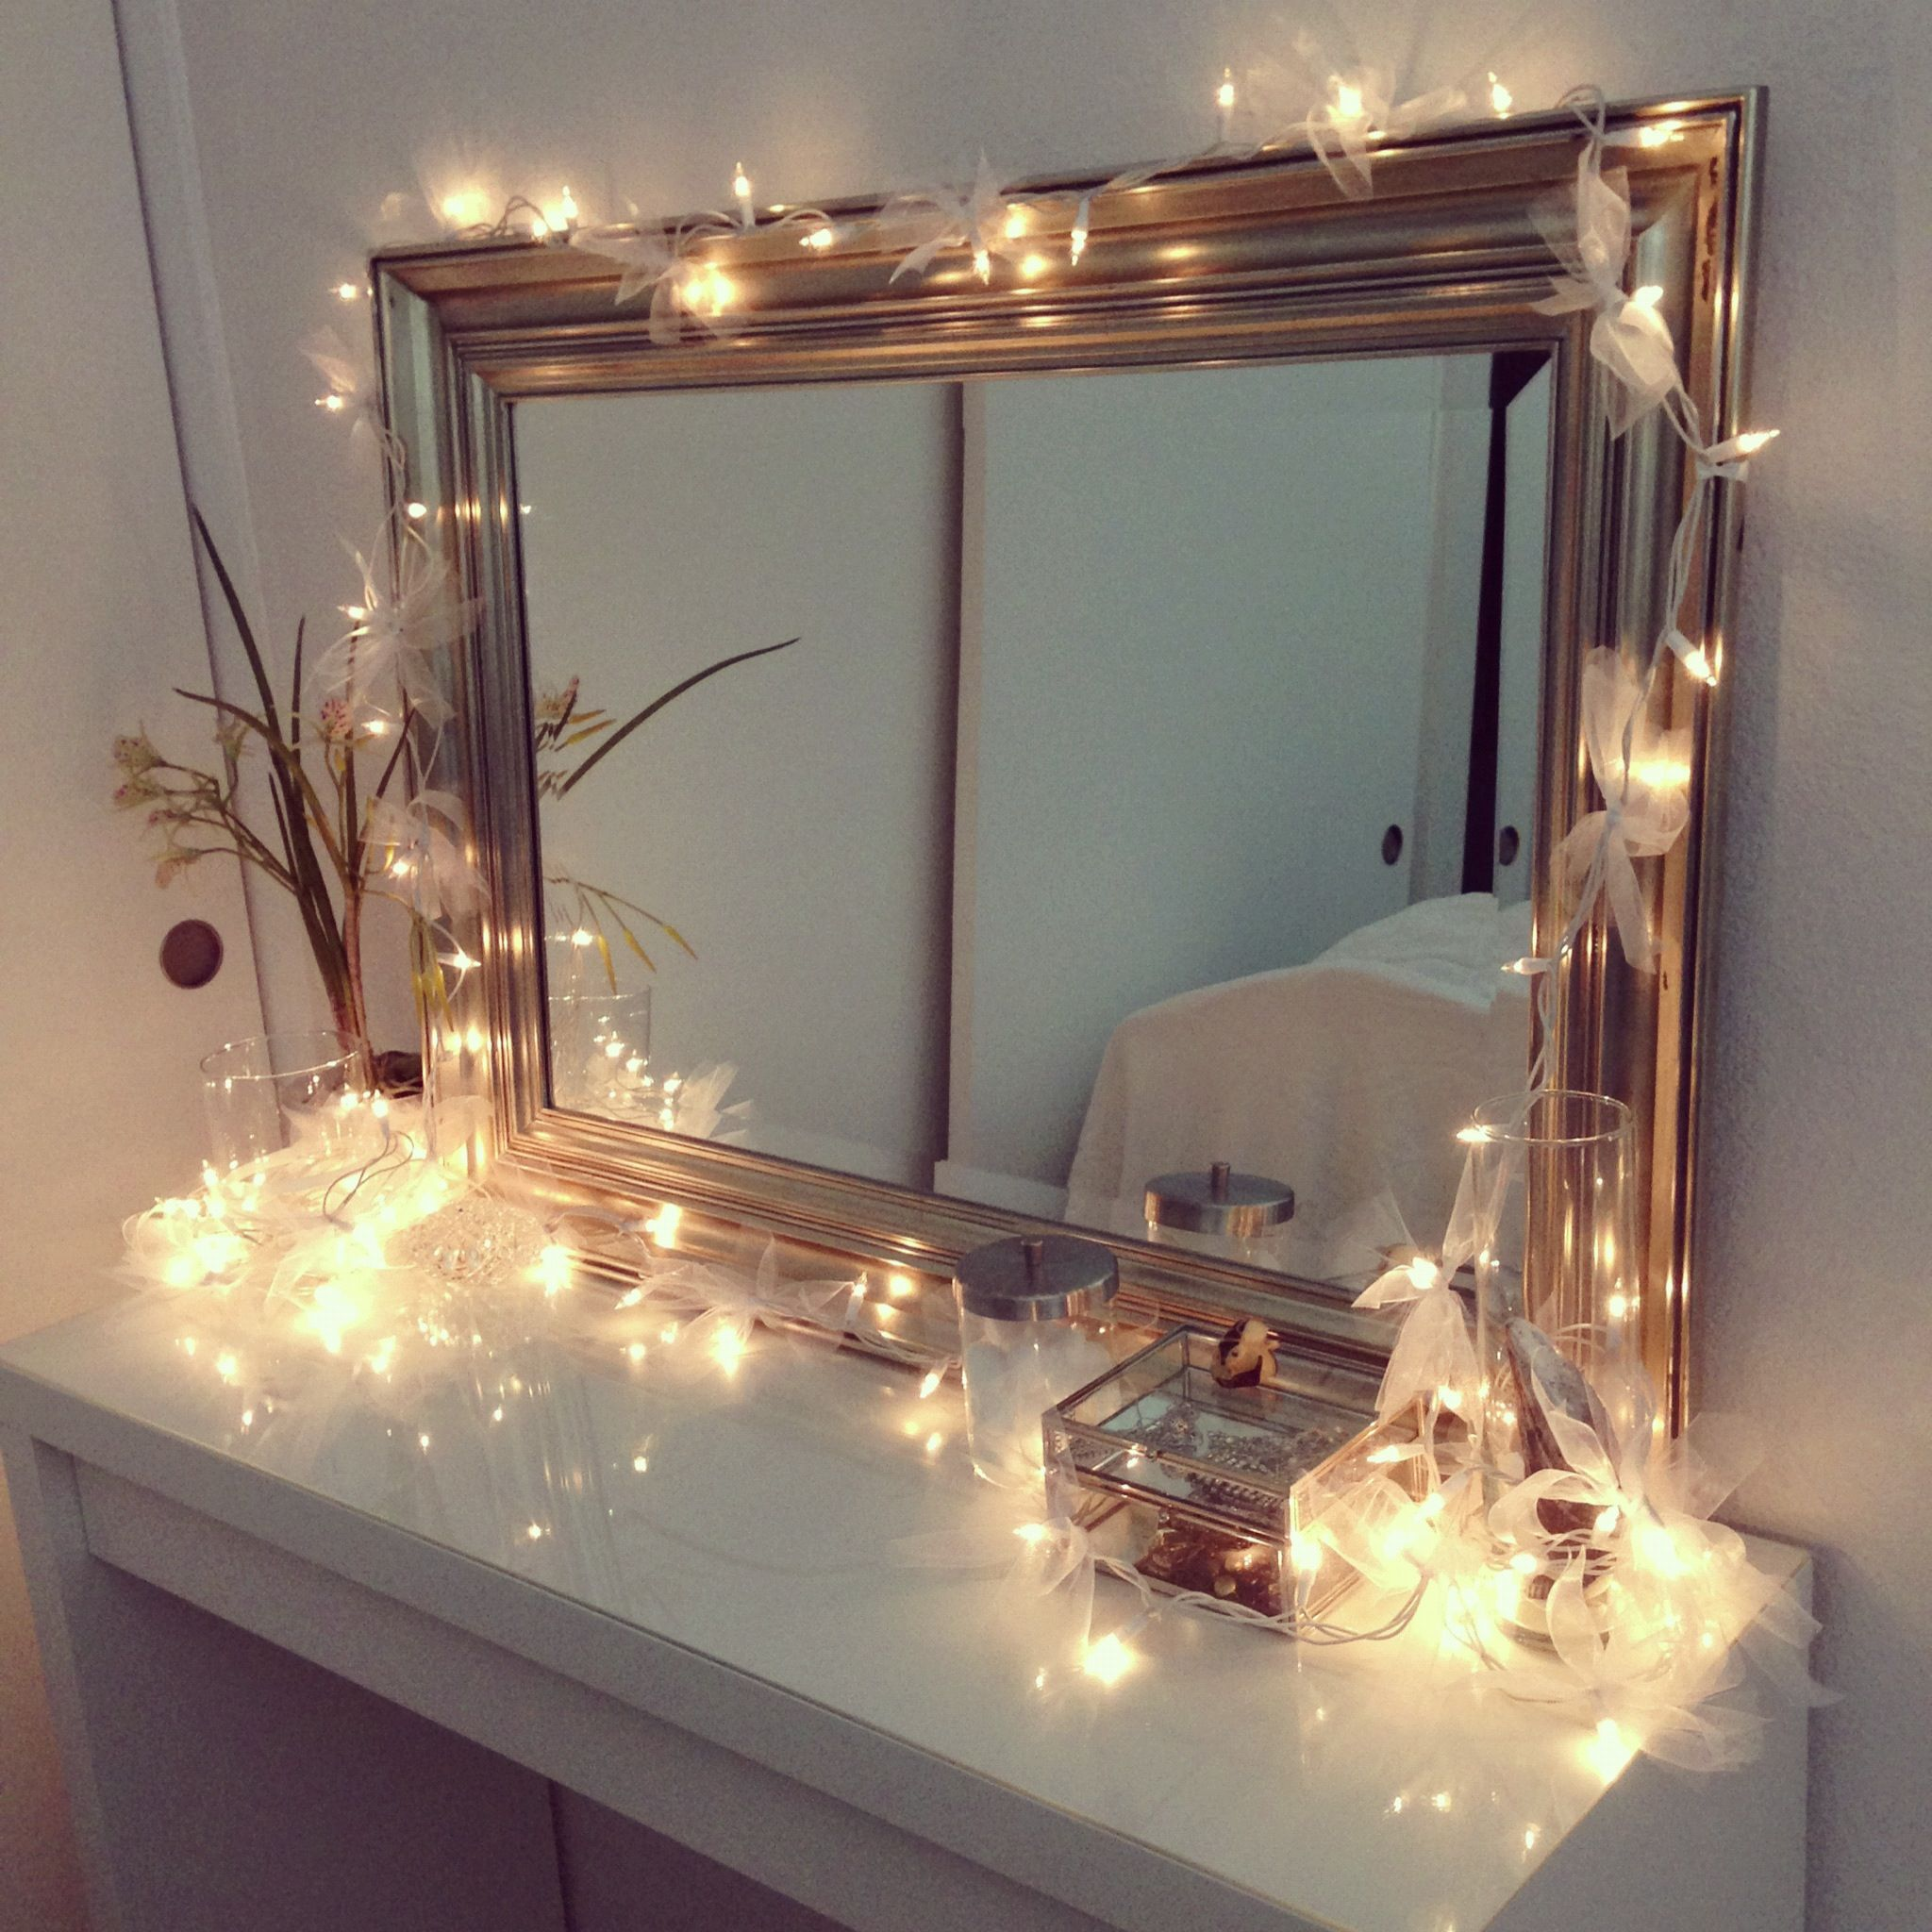 diy vanity mirror under $40 ! i bought 2 patio string lights $10